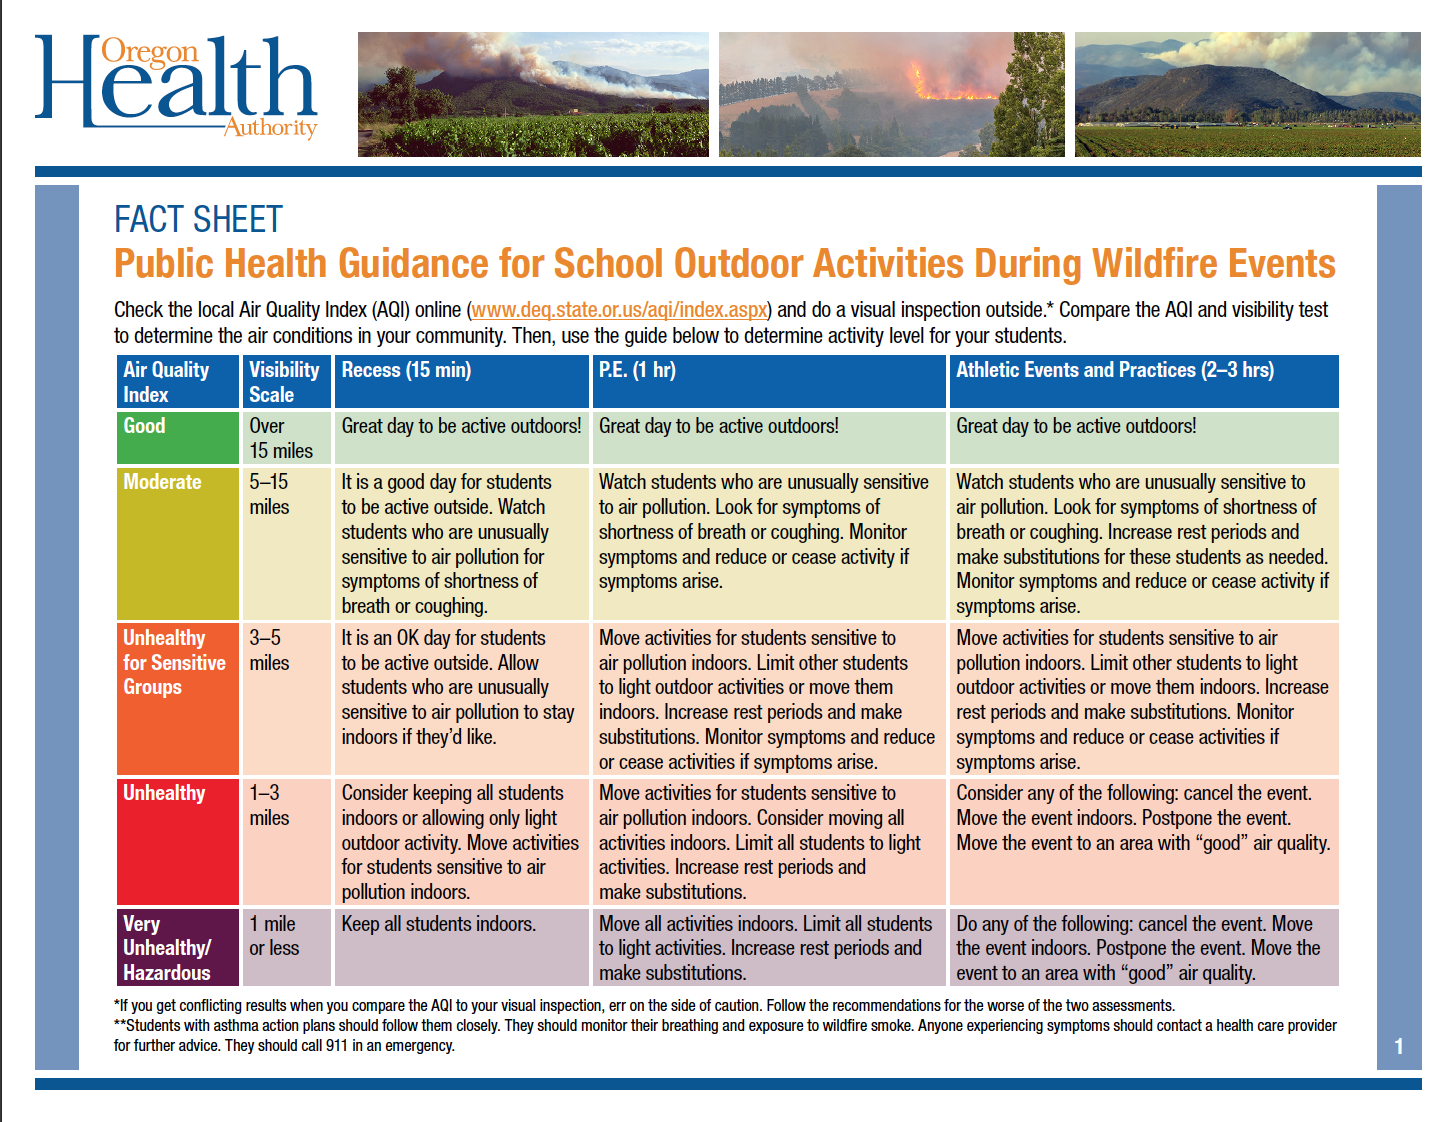 OHA_School_Outdoor_Activity_Wildfire_Fact_Sheet.png